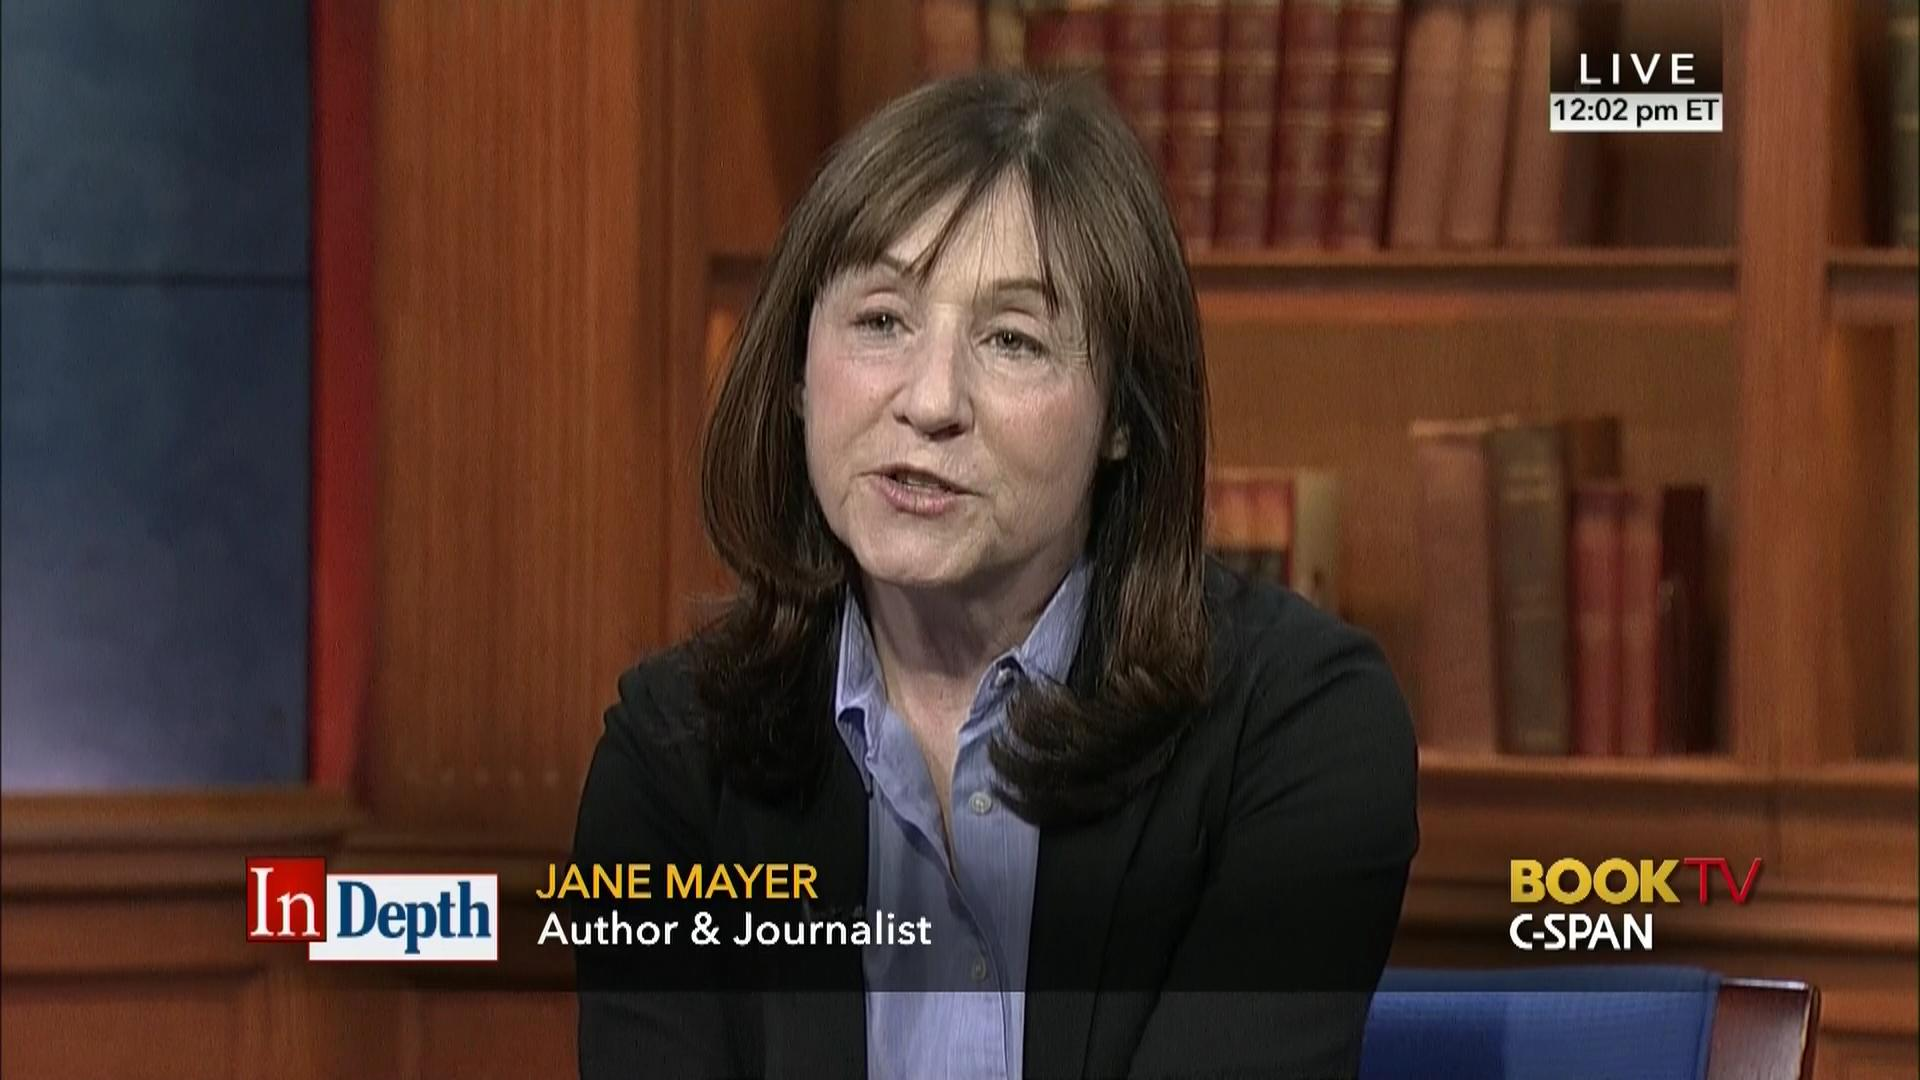 jane mayer cspan